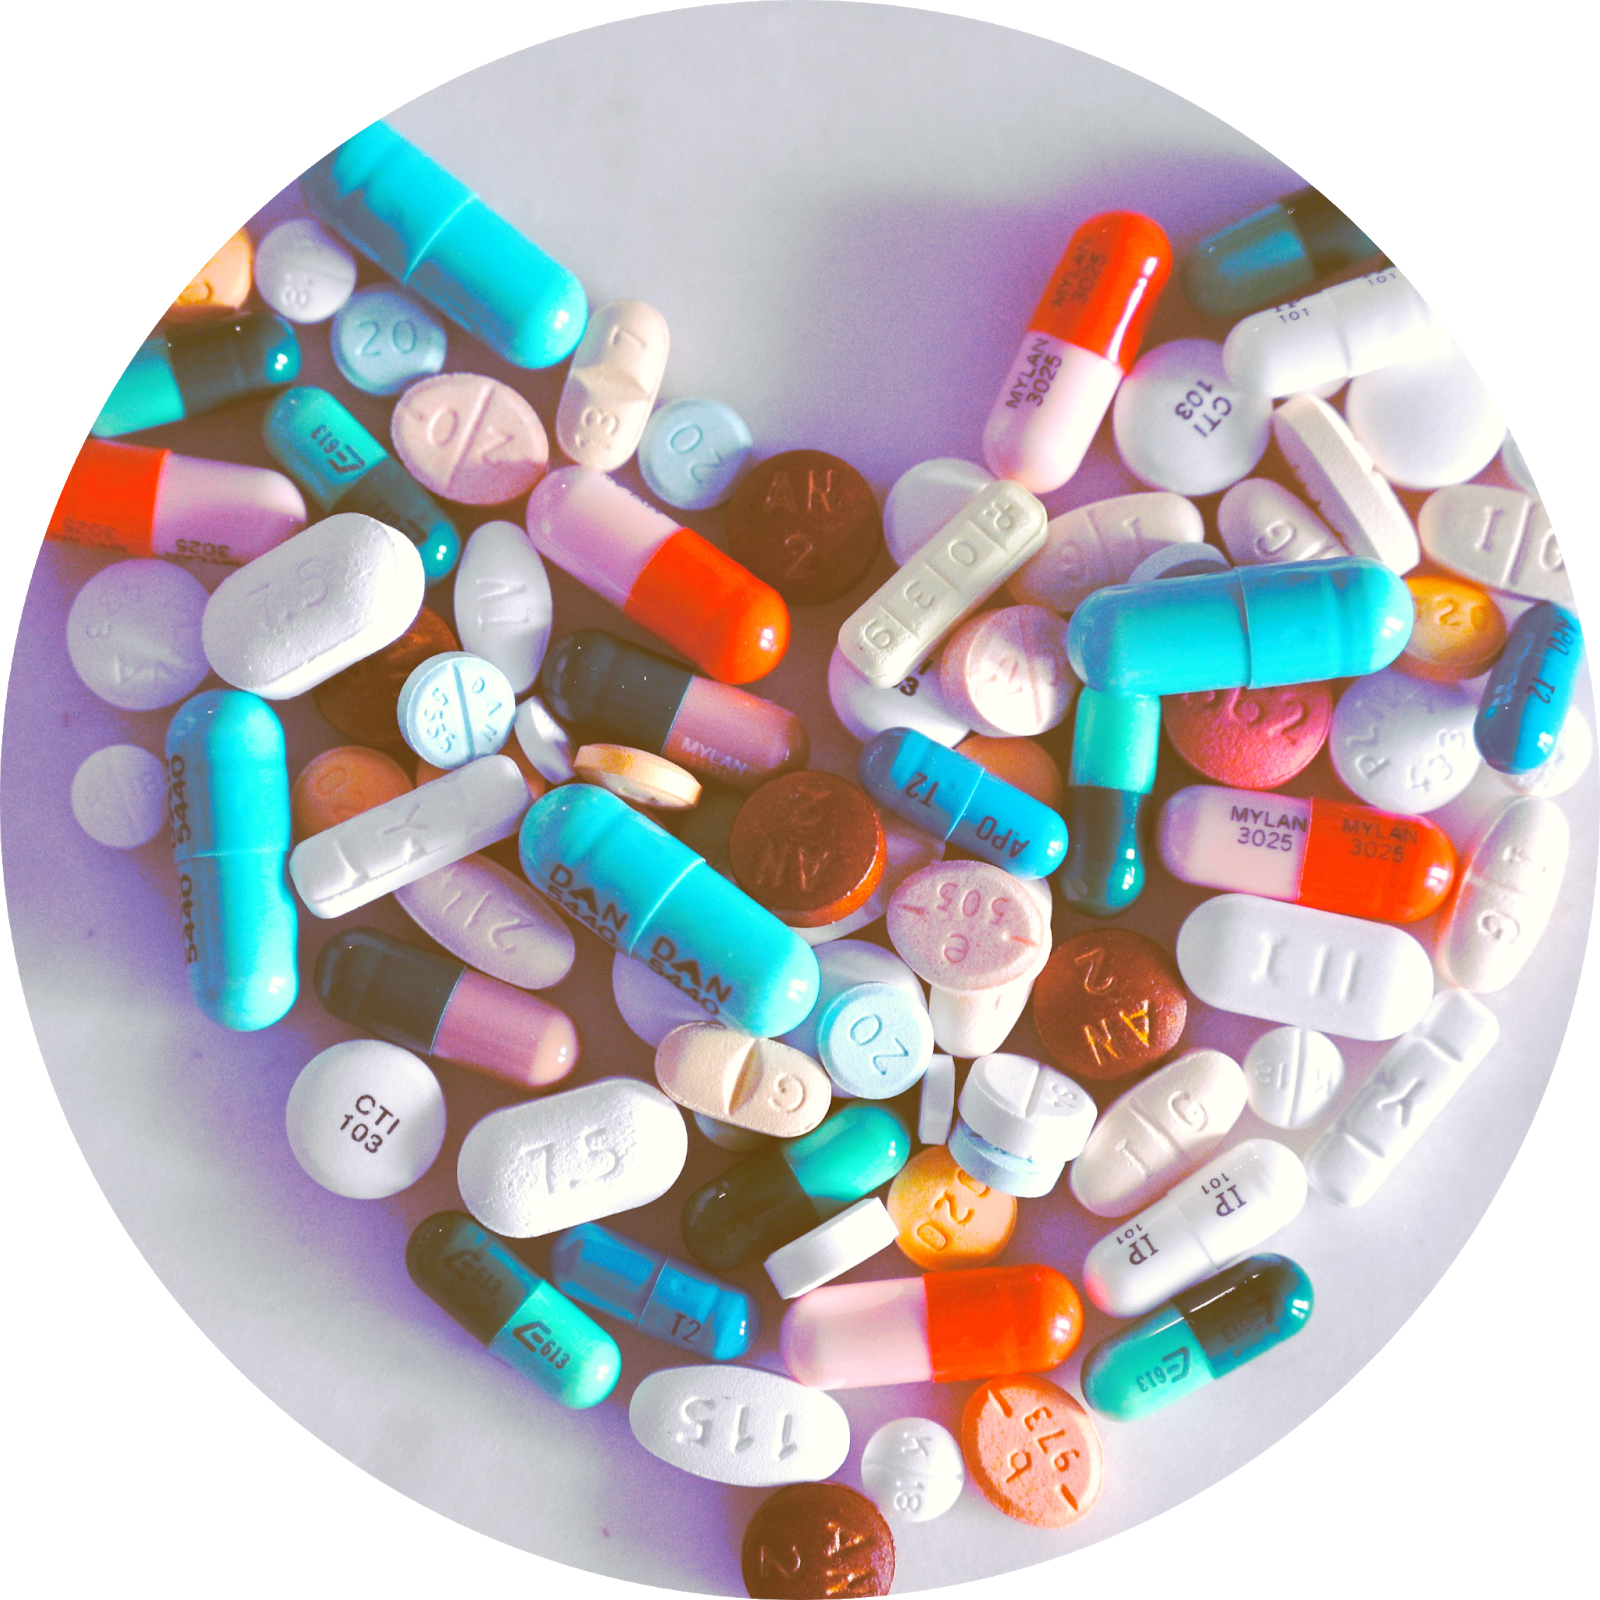 The 7 Best Over the Counter ED Medications